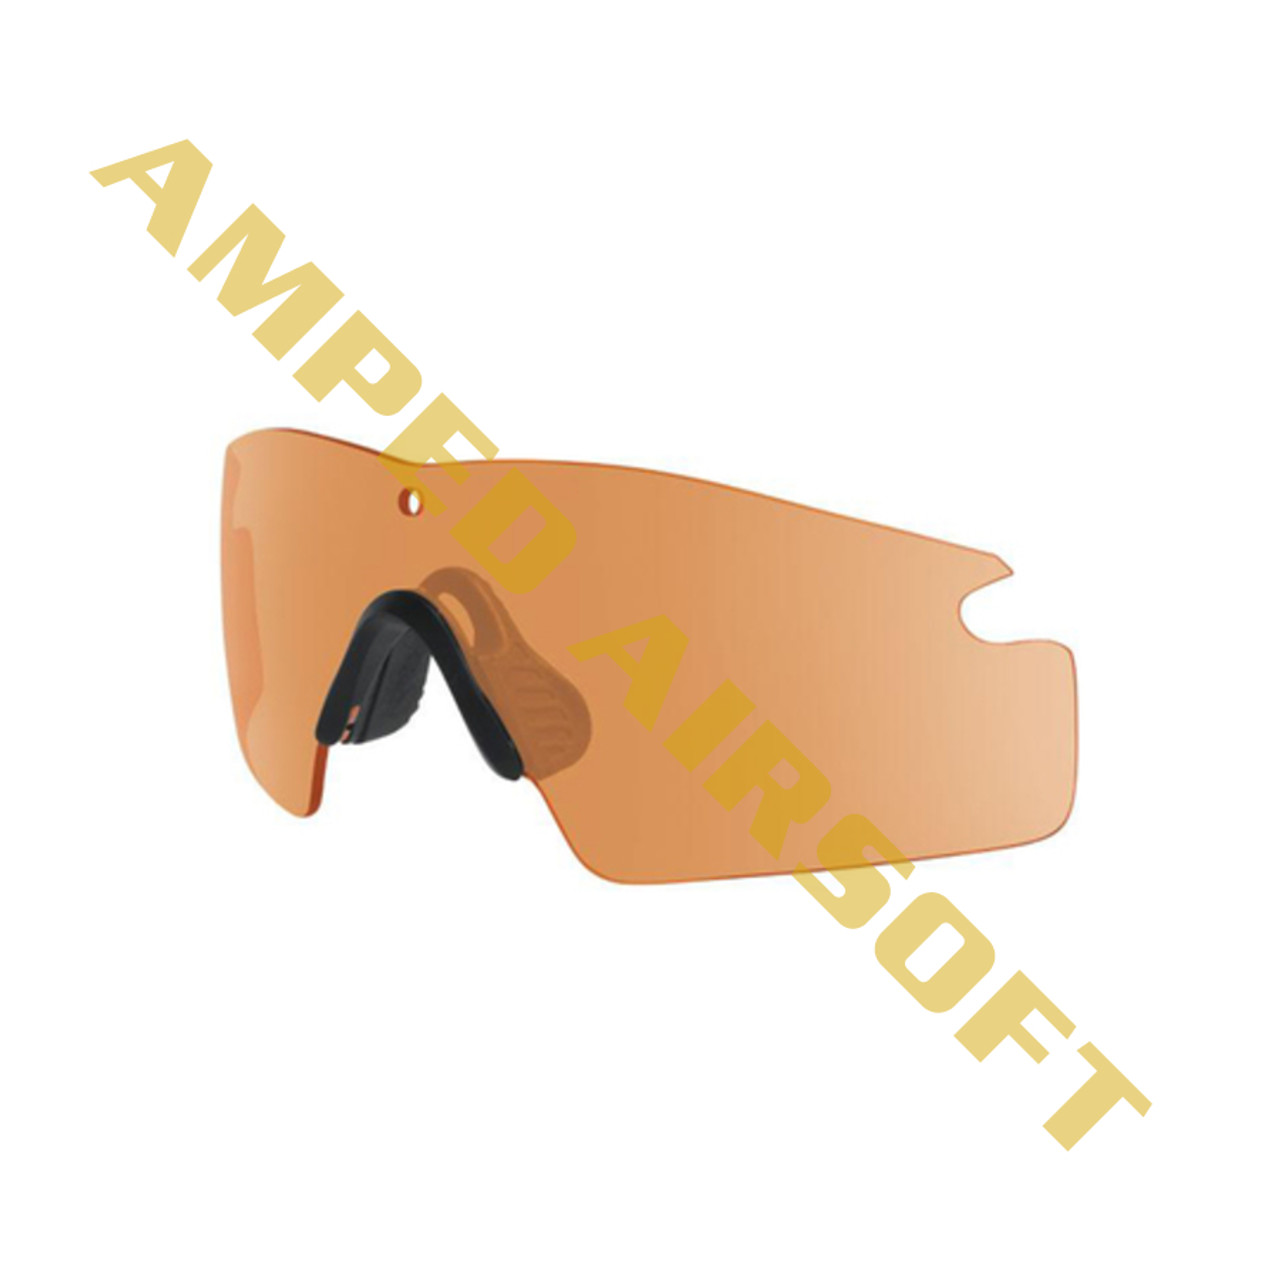 Oakley - SI Ball M Frame - 3.0 Persimmon Replacement Lens